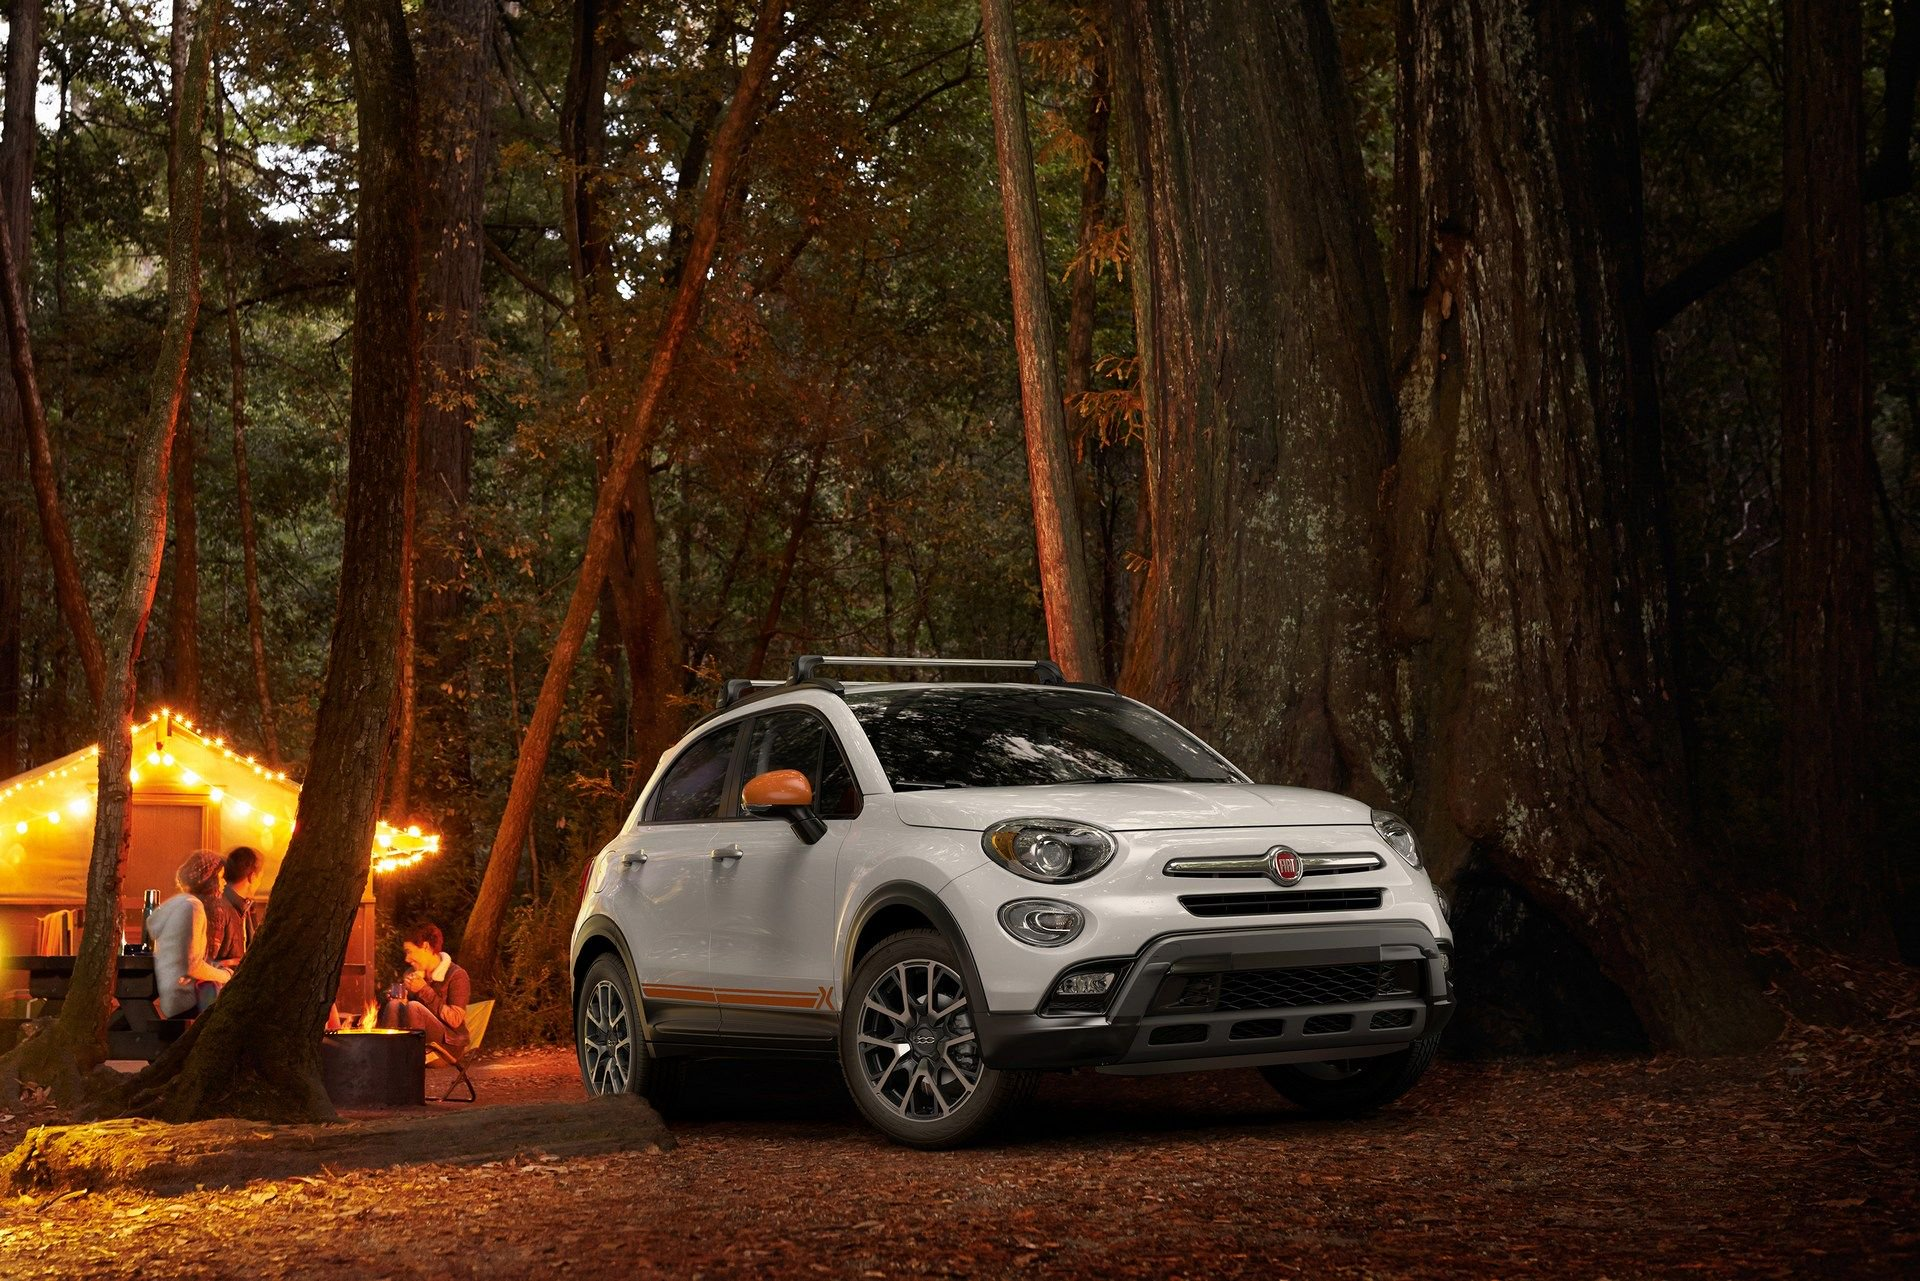 The Fiat 500X Adventurer has the Trekking specification at base